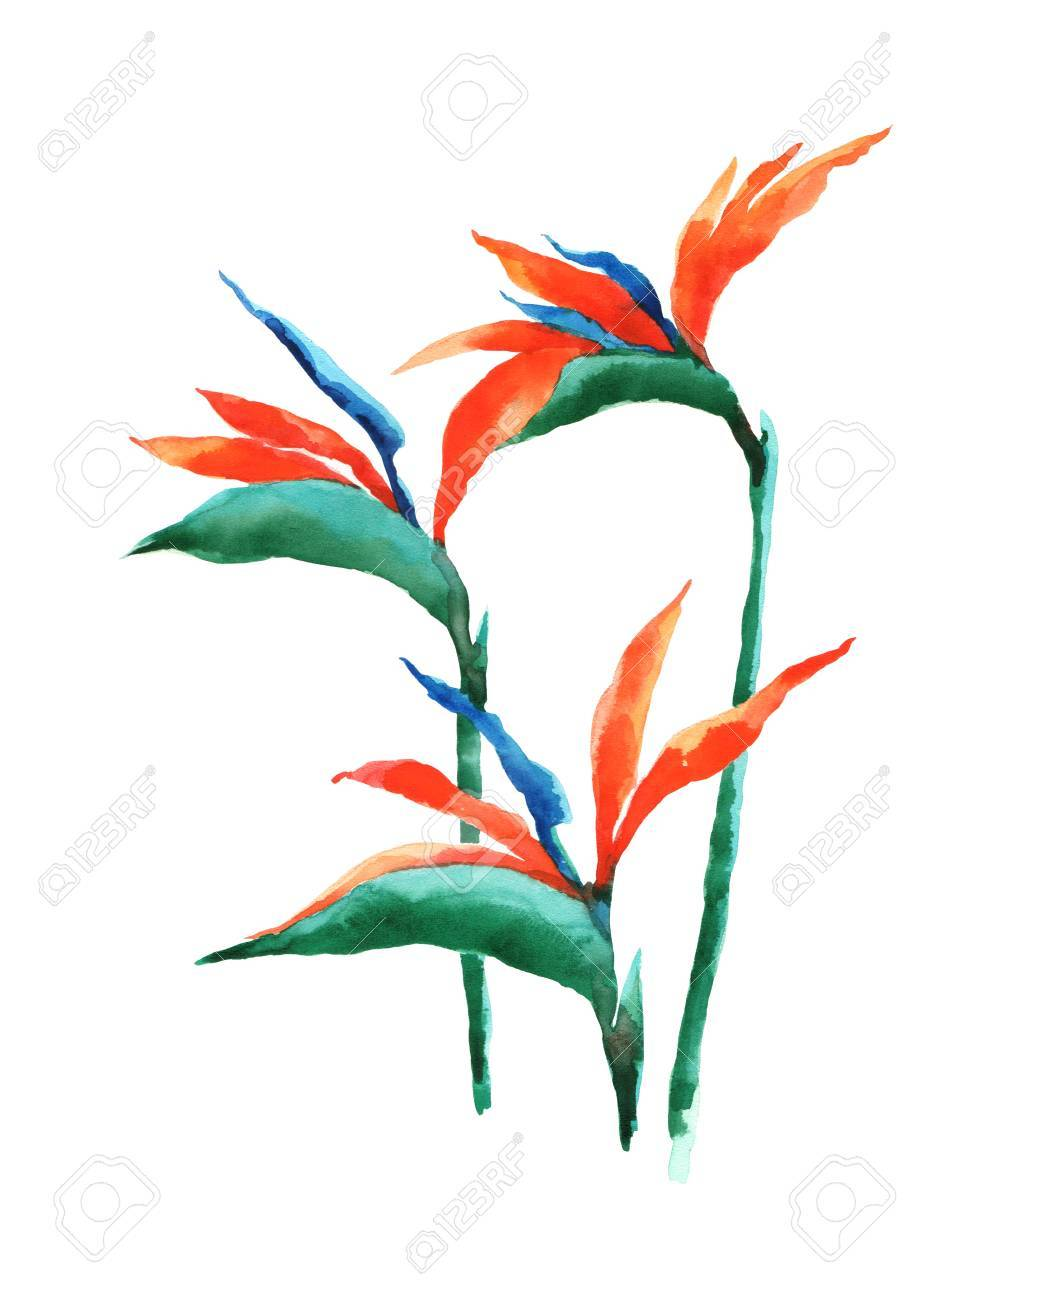 Watercolor illustration of a exotic flower on a white background. Background for your design and decor. - 63721259